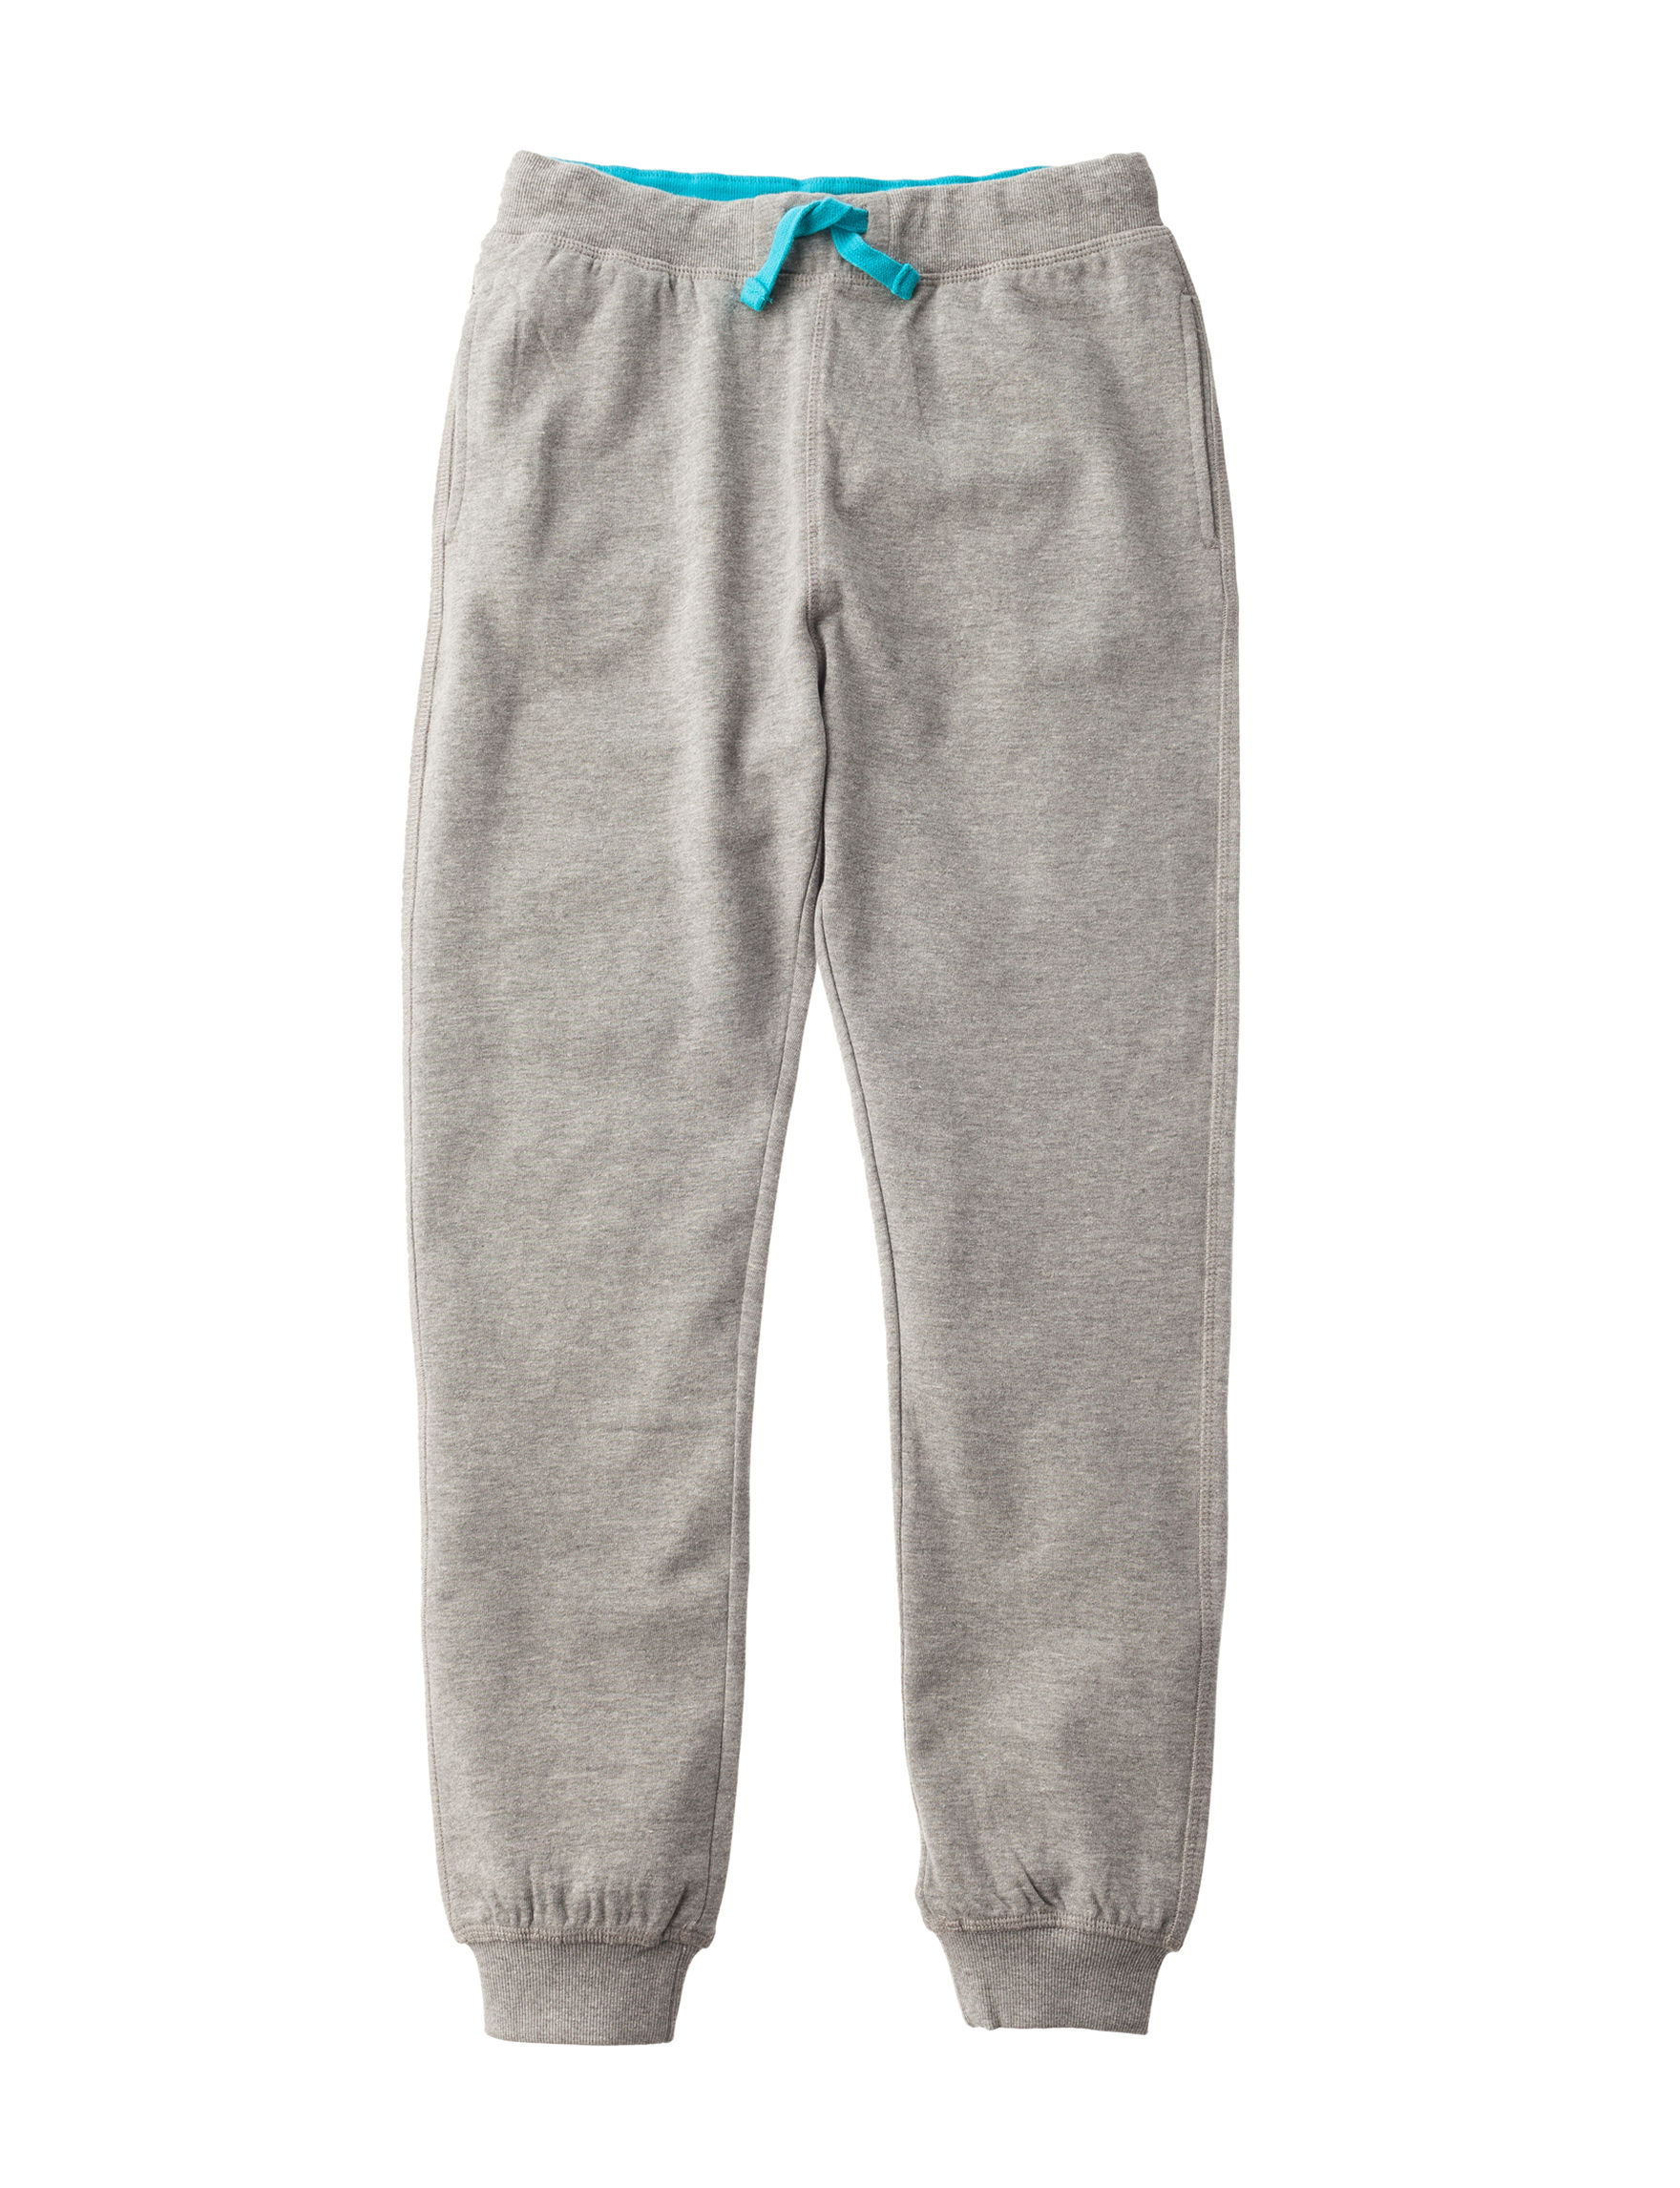 Rustic Blue Light Heather Grey Relaxed